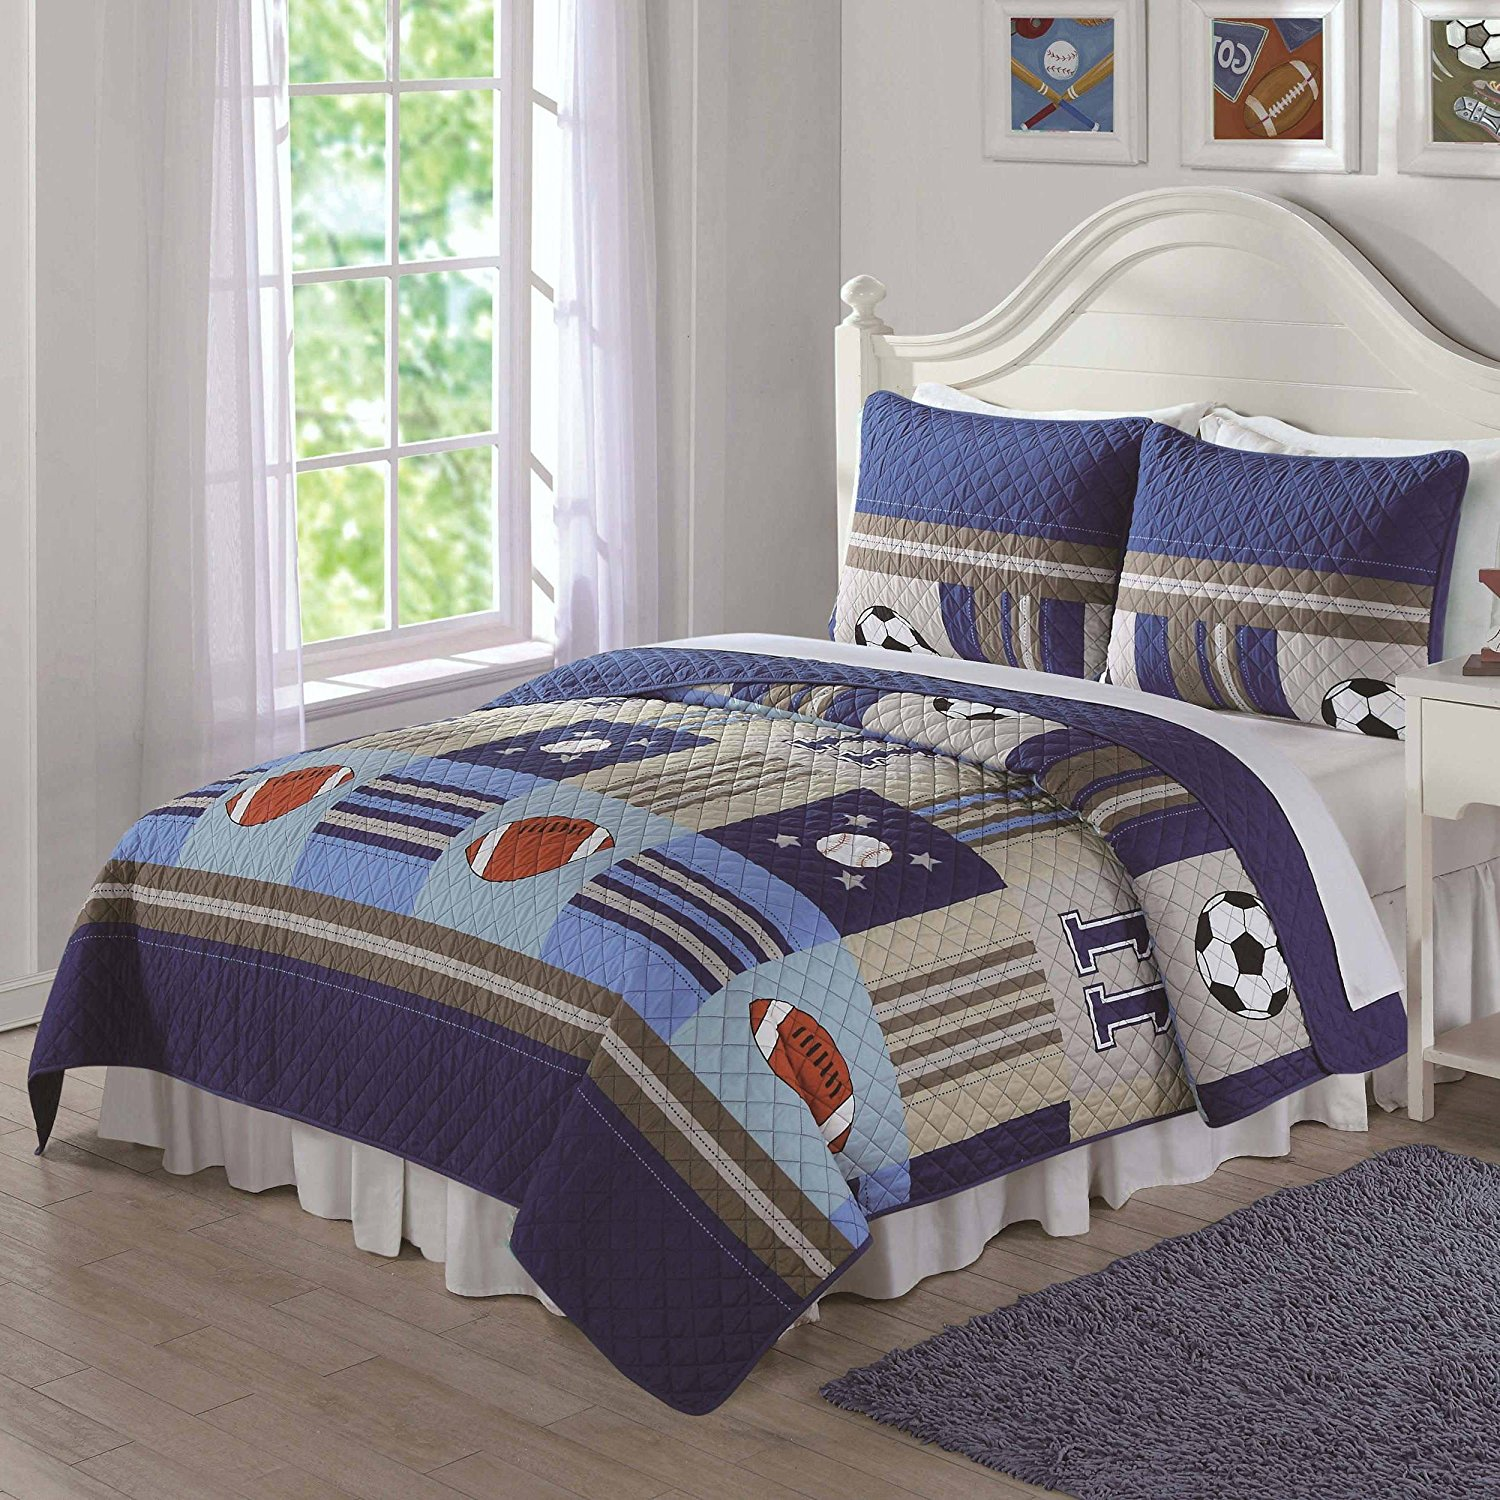 2 Piece Boys Tan Navy Royal Blue Grey Twin Quilt Set, Sports Themed Kids Bedding Patchwork Graphic Soccer Football Baseball Striped Stylish Fun Colorful Bold Athlete, Cotton, Microfiber